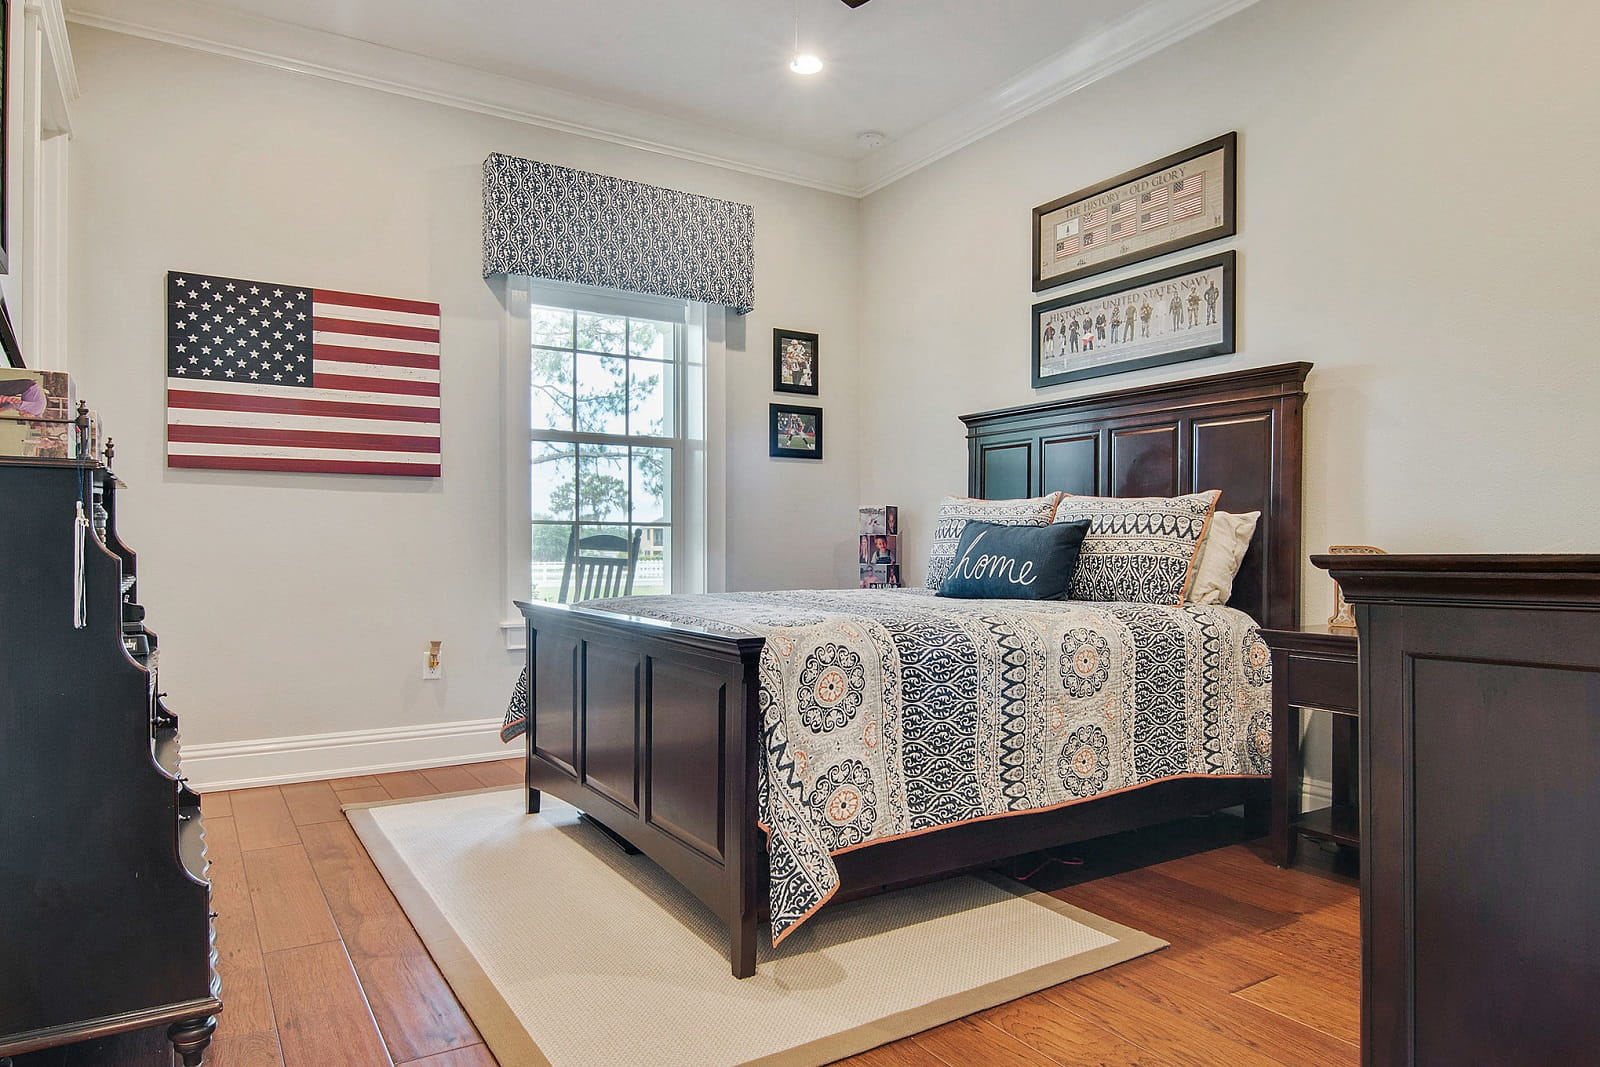 Real Estate Photography in Lakeland - FL - USA - Bedroom View